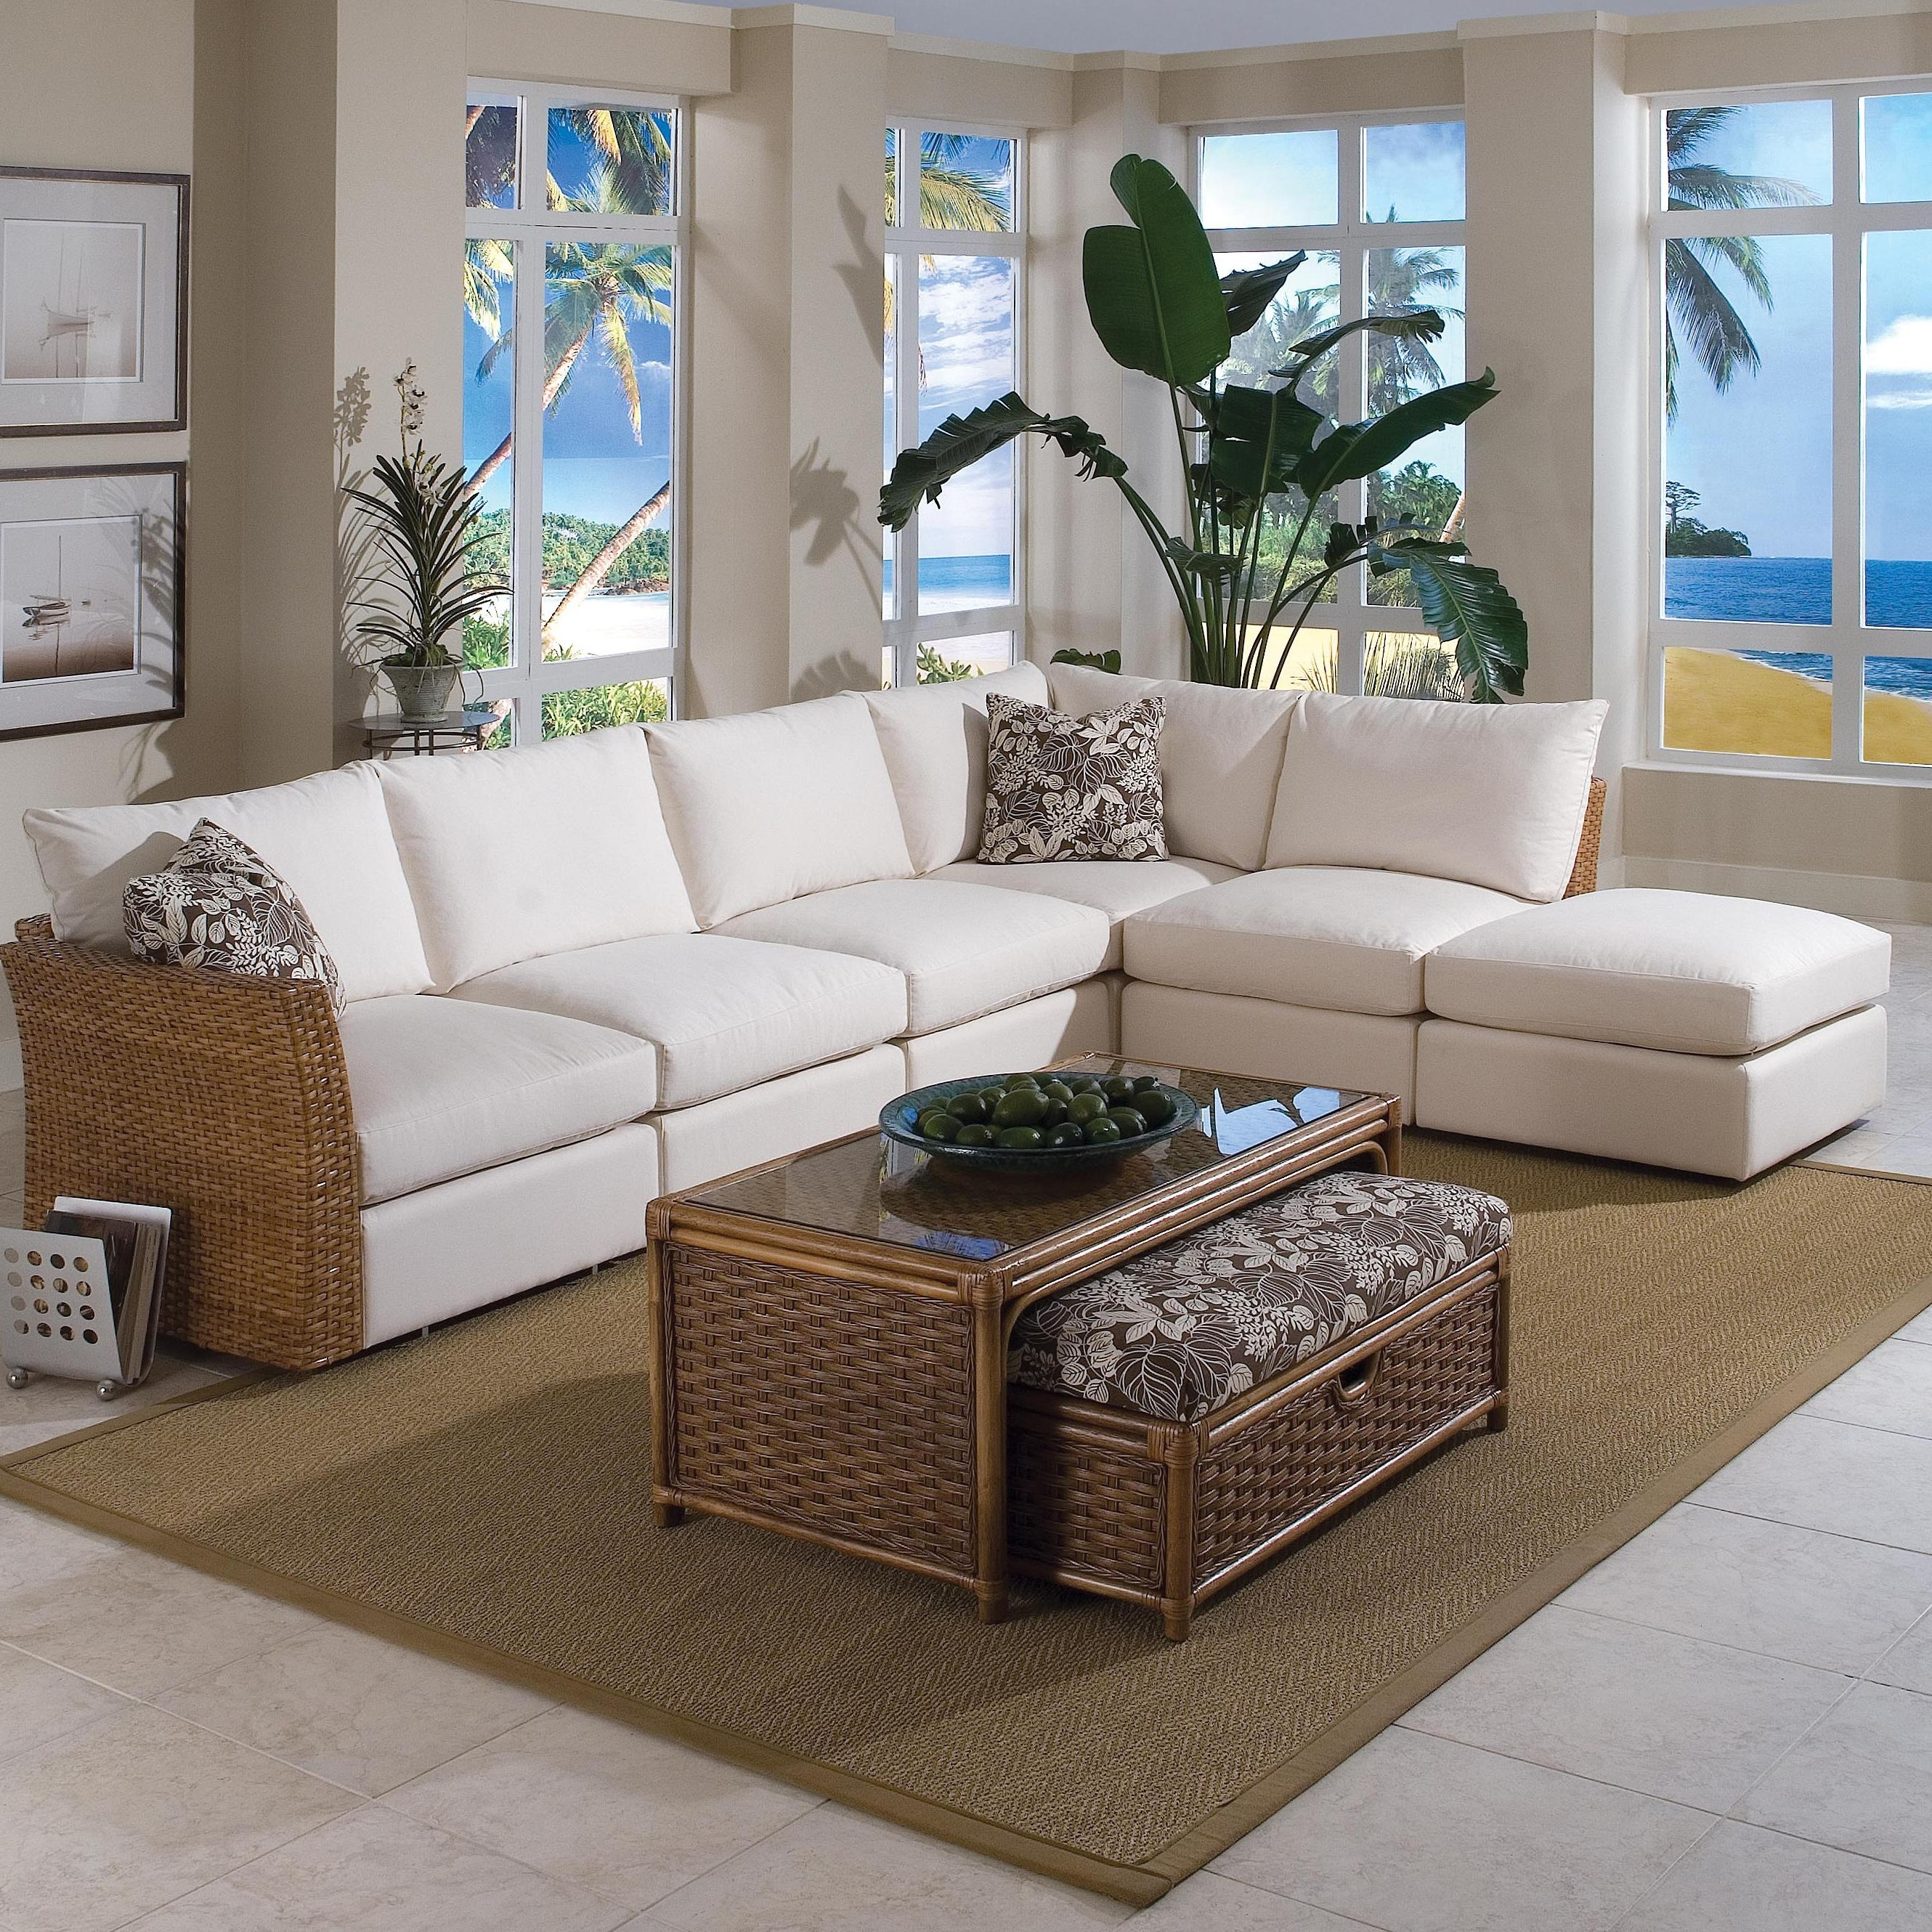 2019 Braxton Culler Grand Water Point Tropical Sectional Sofa With Two For Wilmington Nc Sectional Sofas (View 1 of 20)